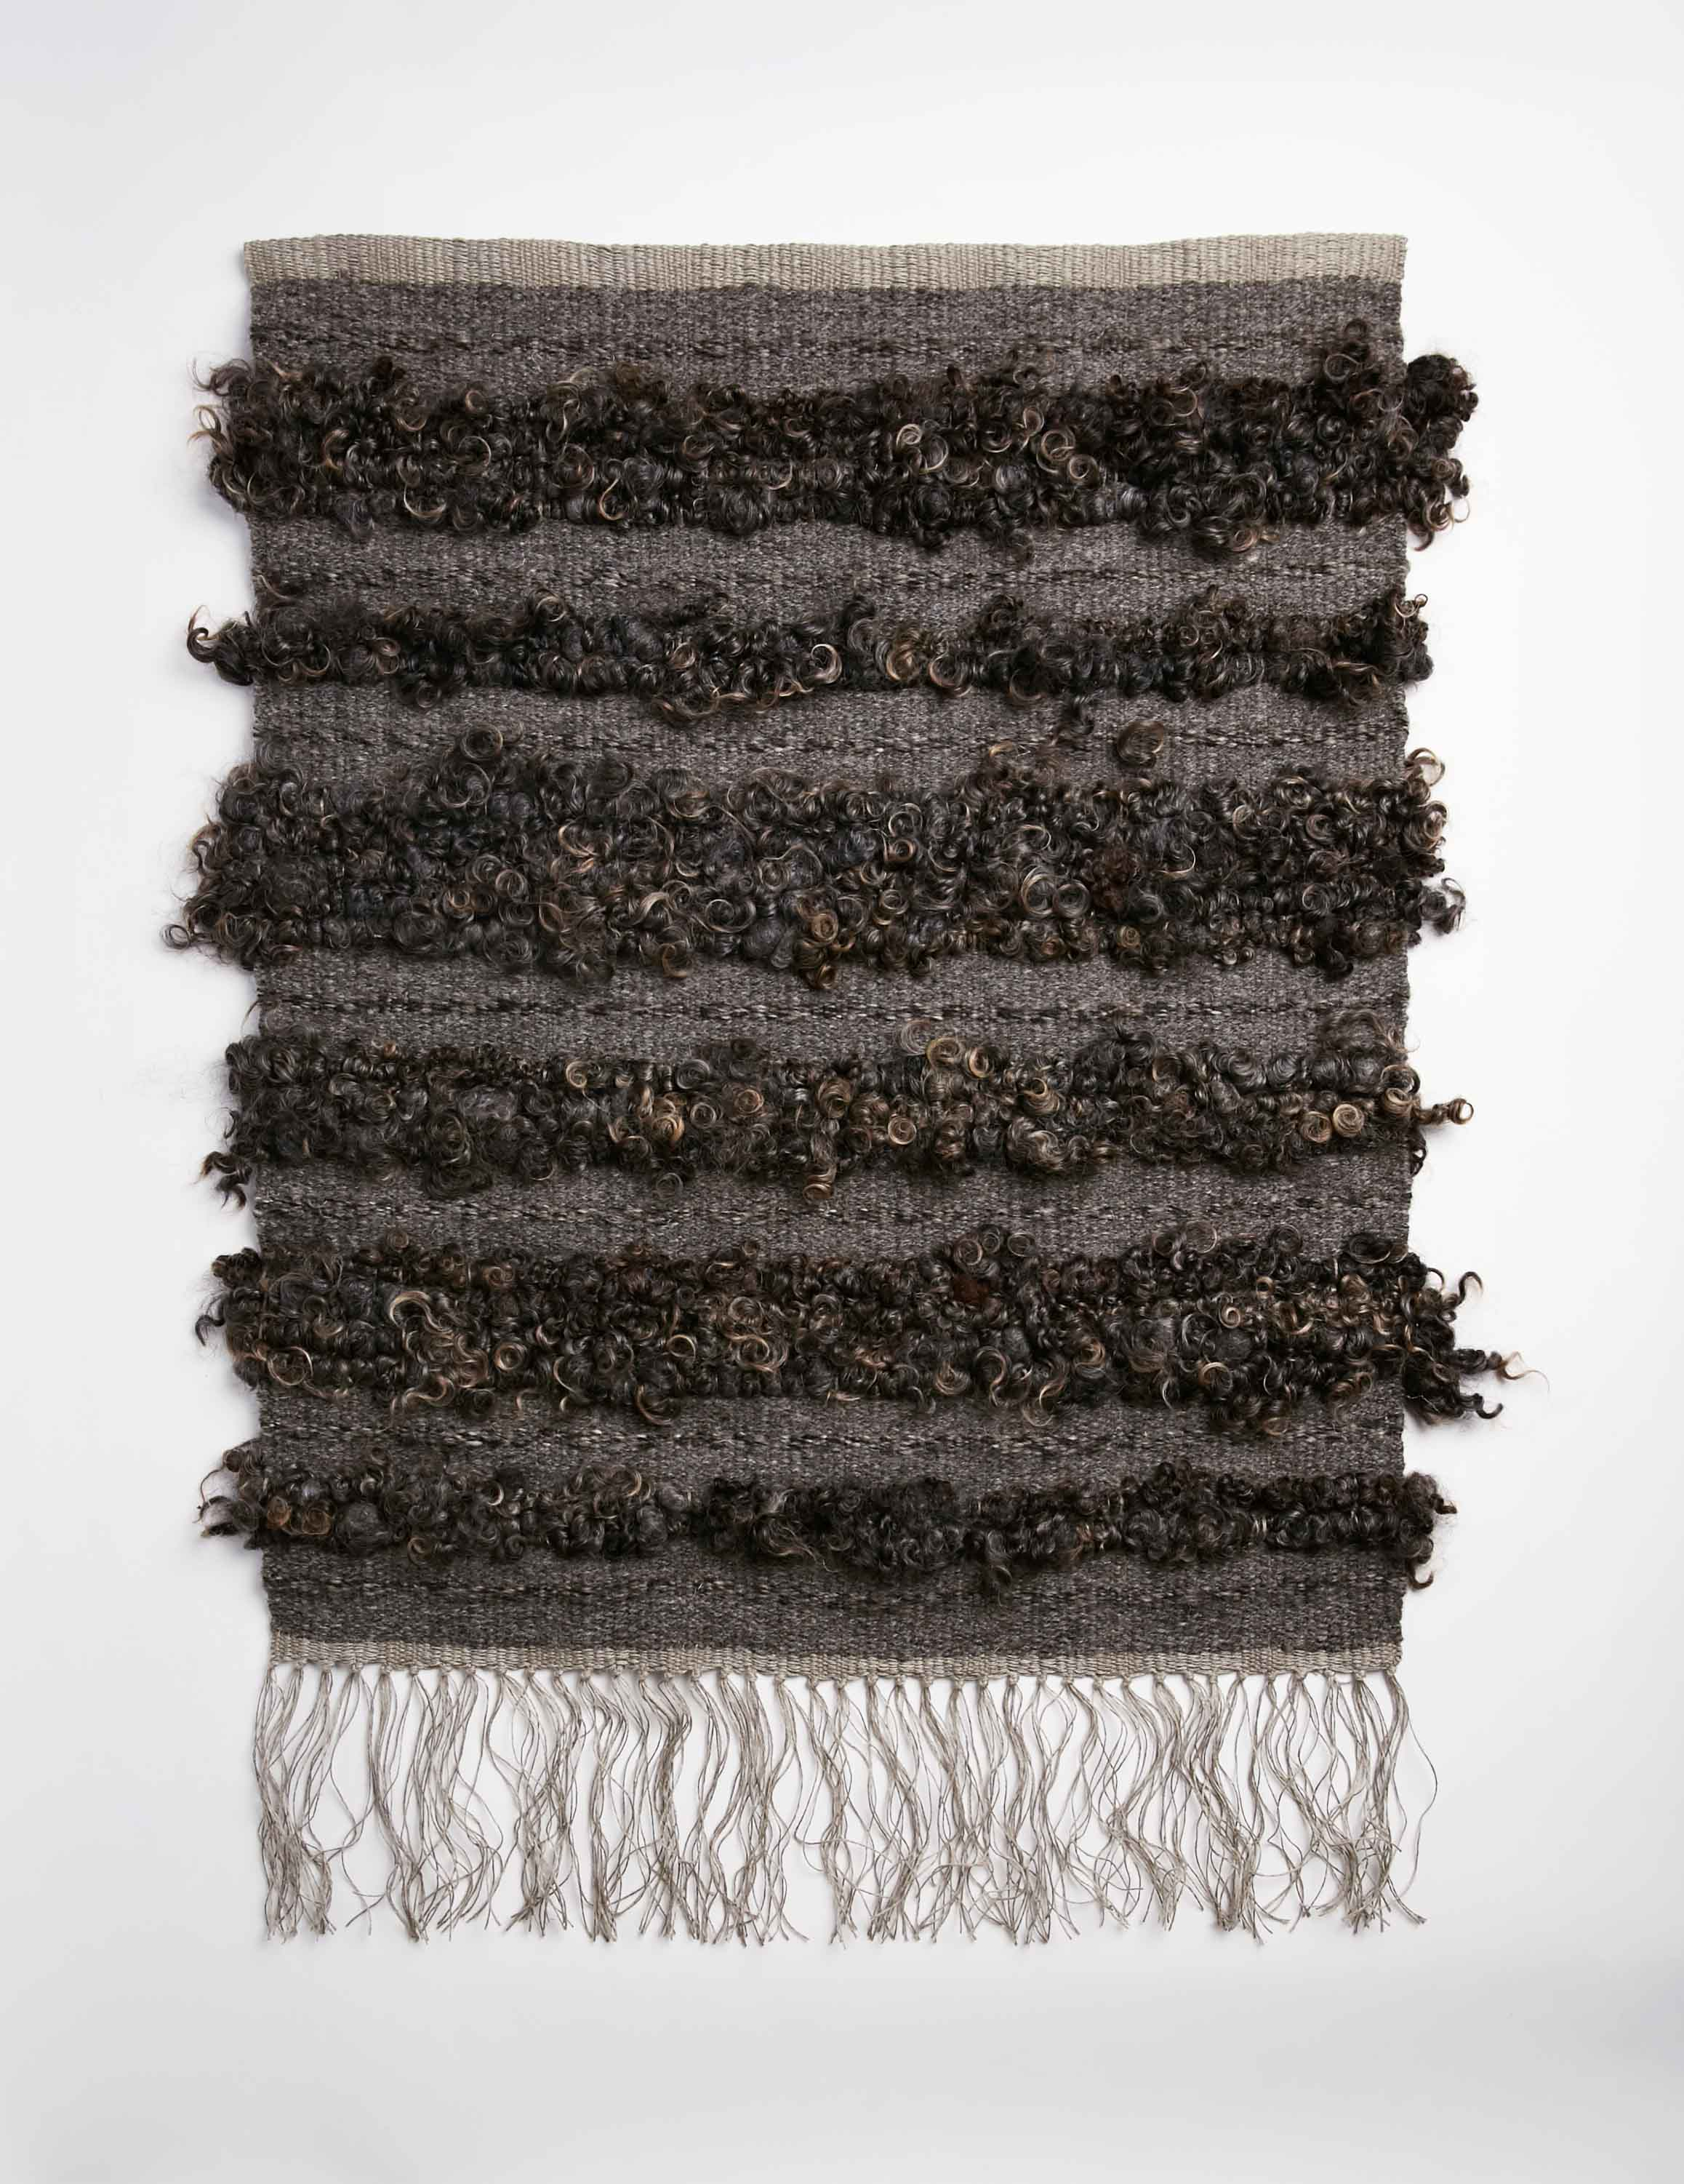 Raw Fleece Wall Hanging - Blackened Peat